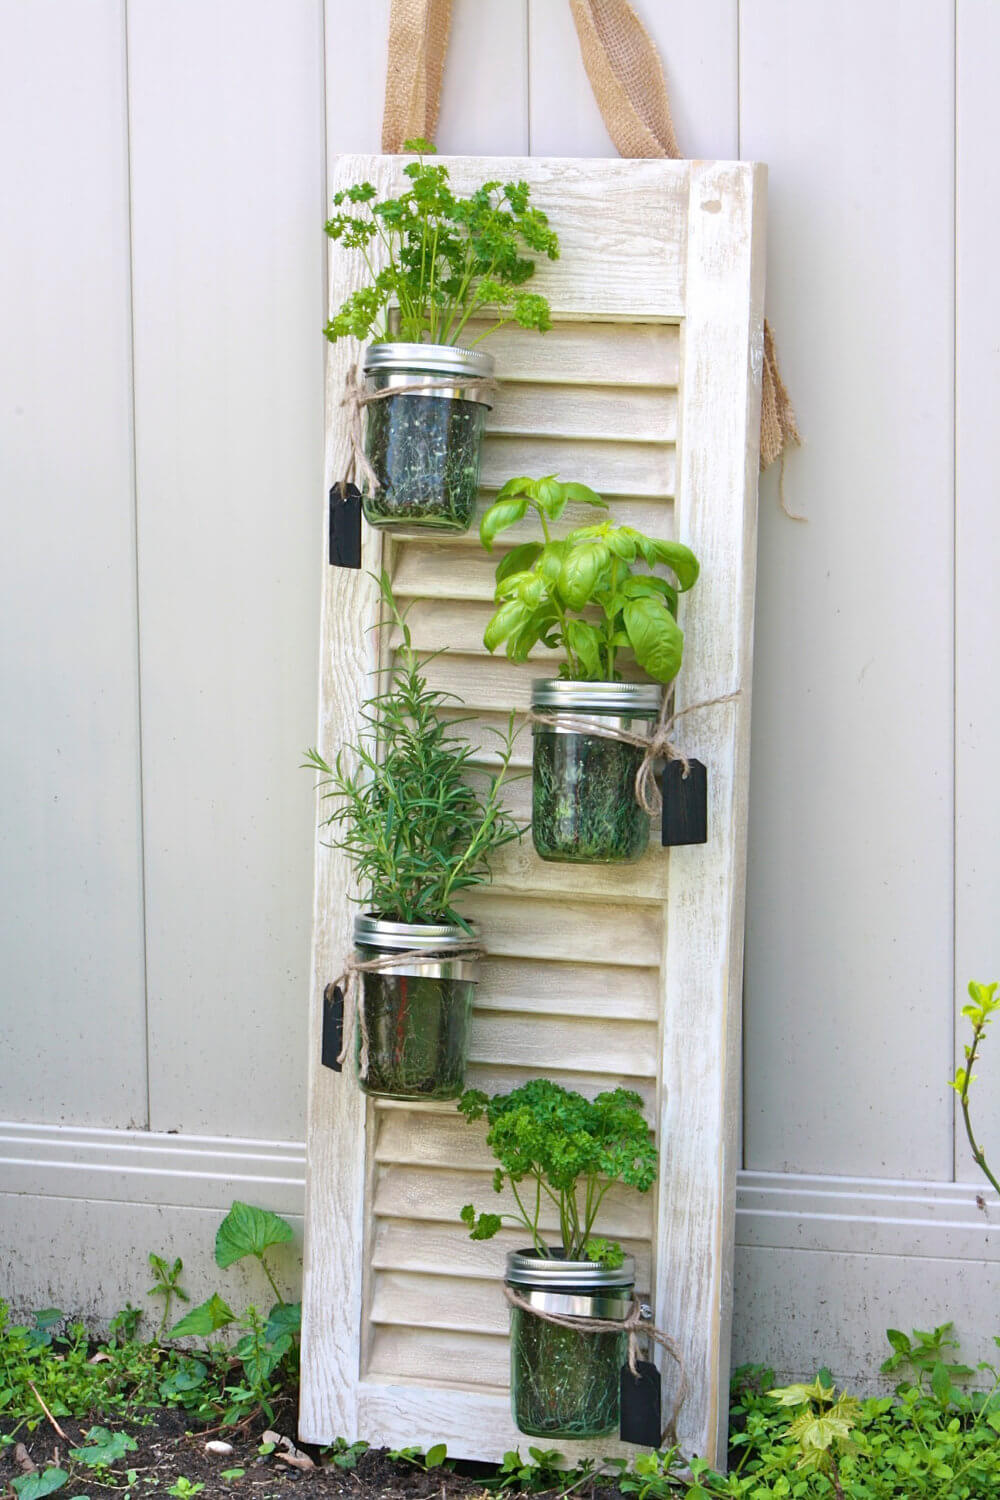 DIY Home Decor: 18 Ways to Repurpose Old Shutters